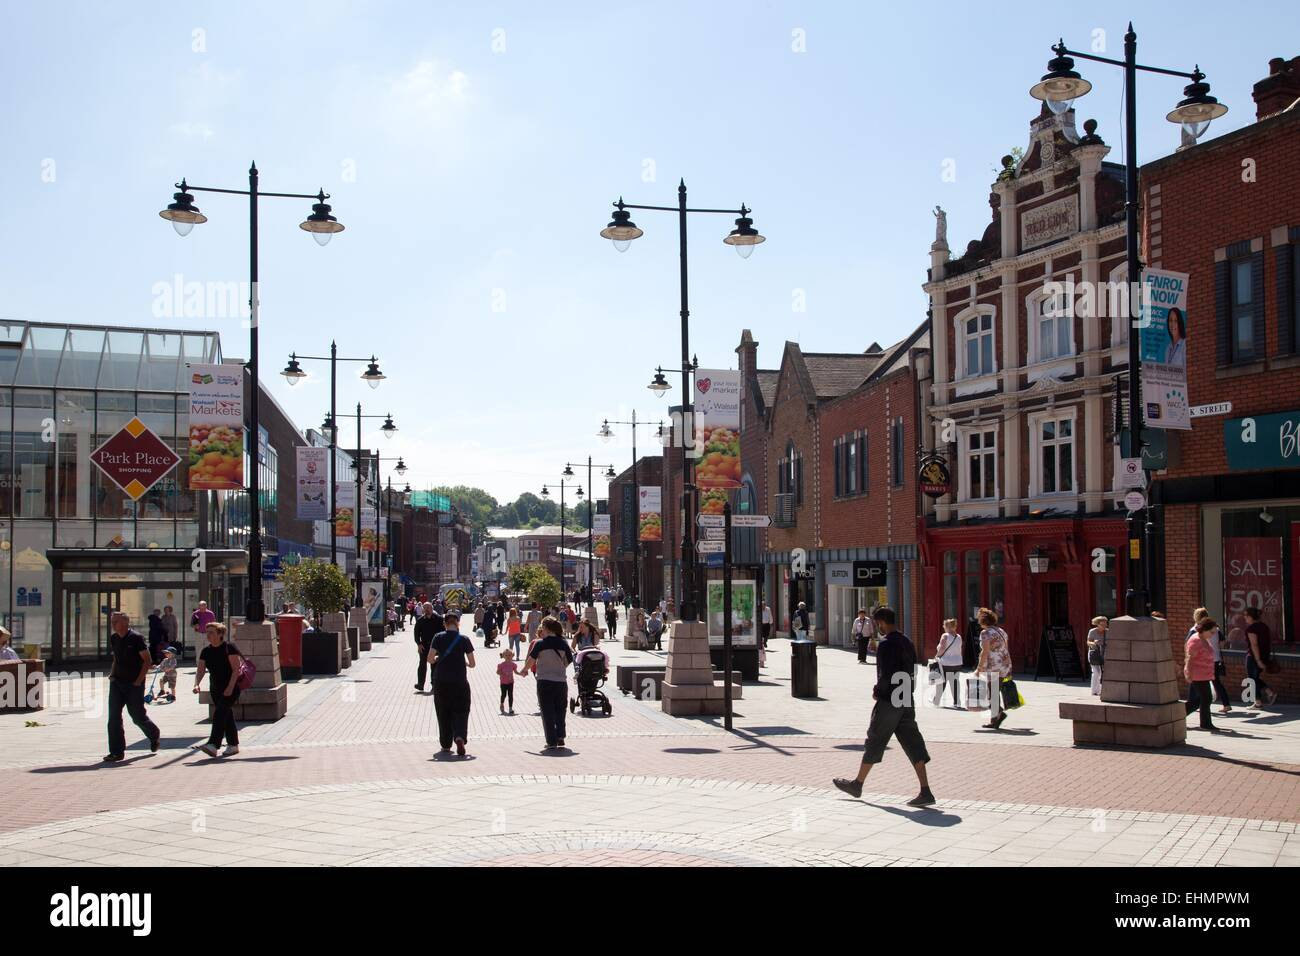 Shops and retailers in Walsall town centre, West Midlands - Stock Image